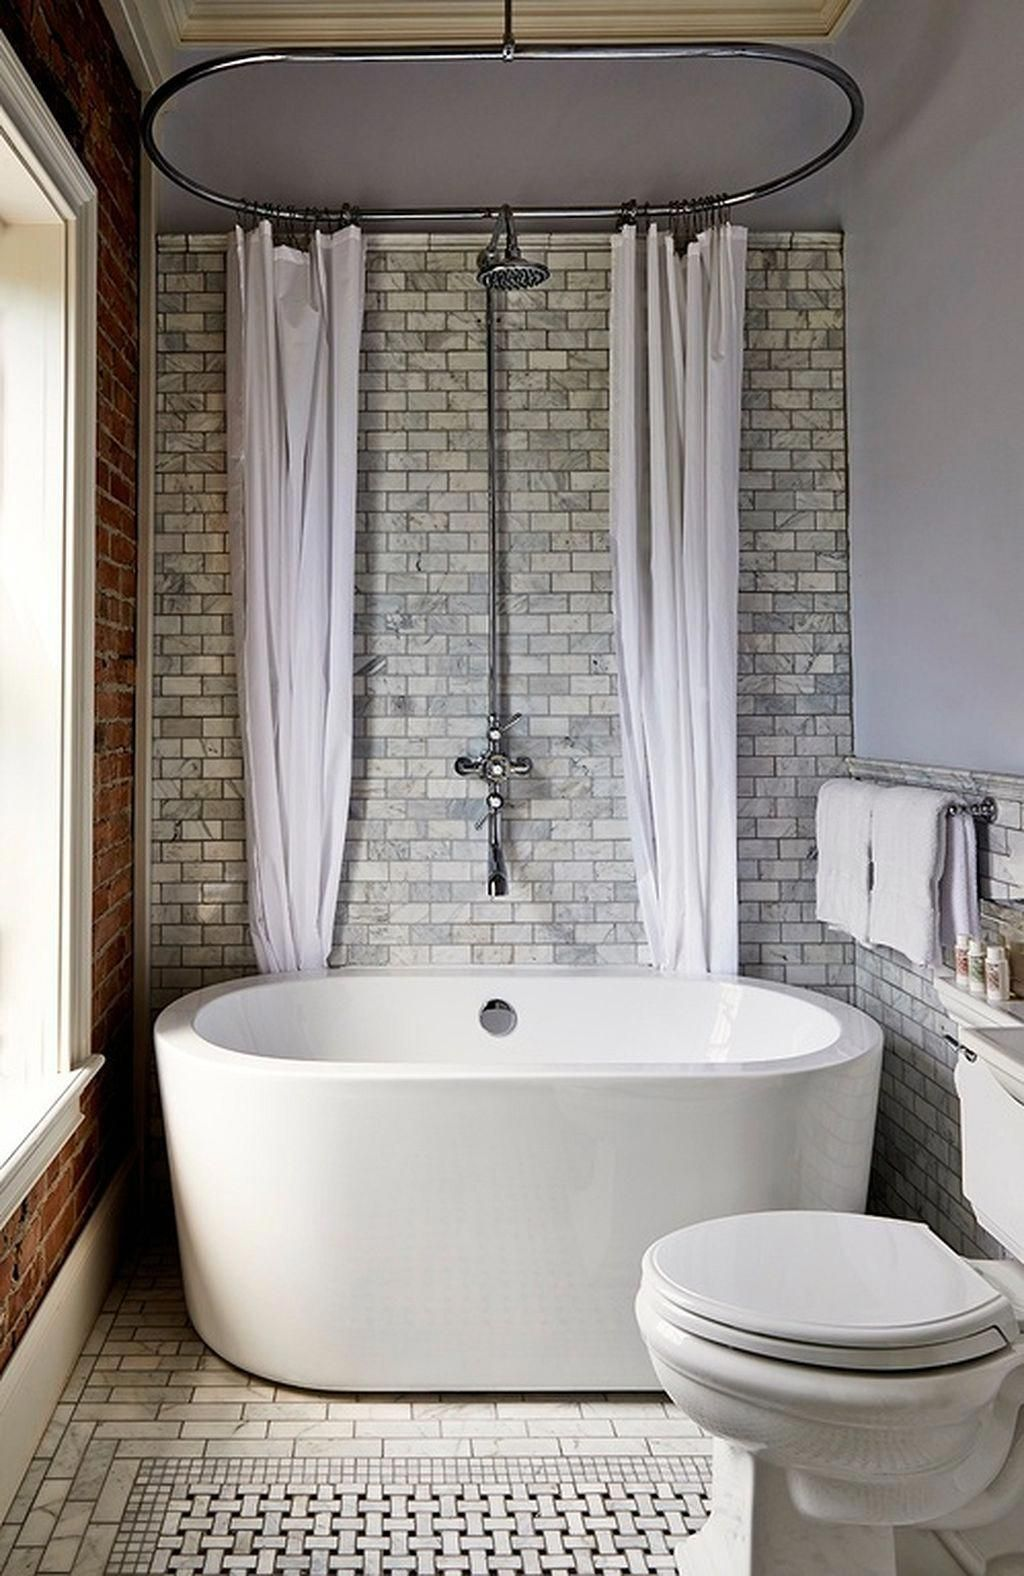 Tips For A Minimalist Bathroom With Images Bathroom Tub Shower - Bathtub Shower Combo For Small Spaces